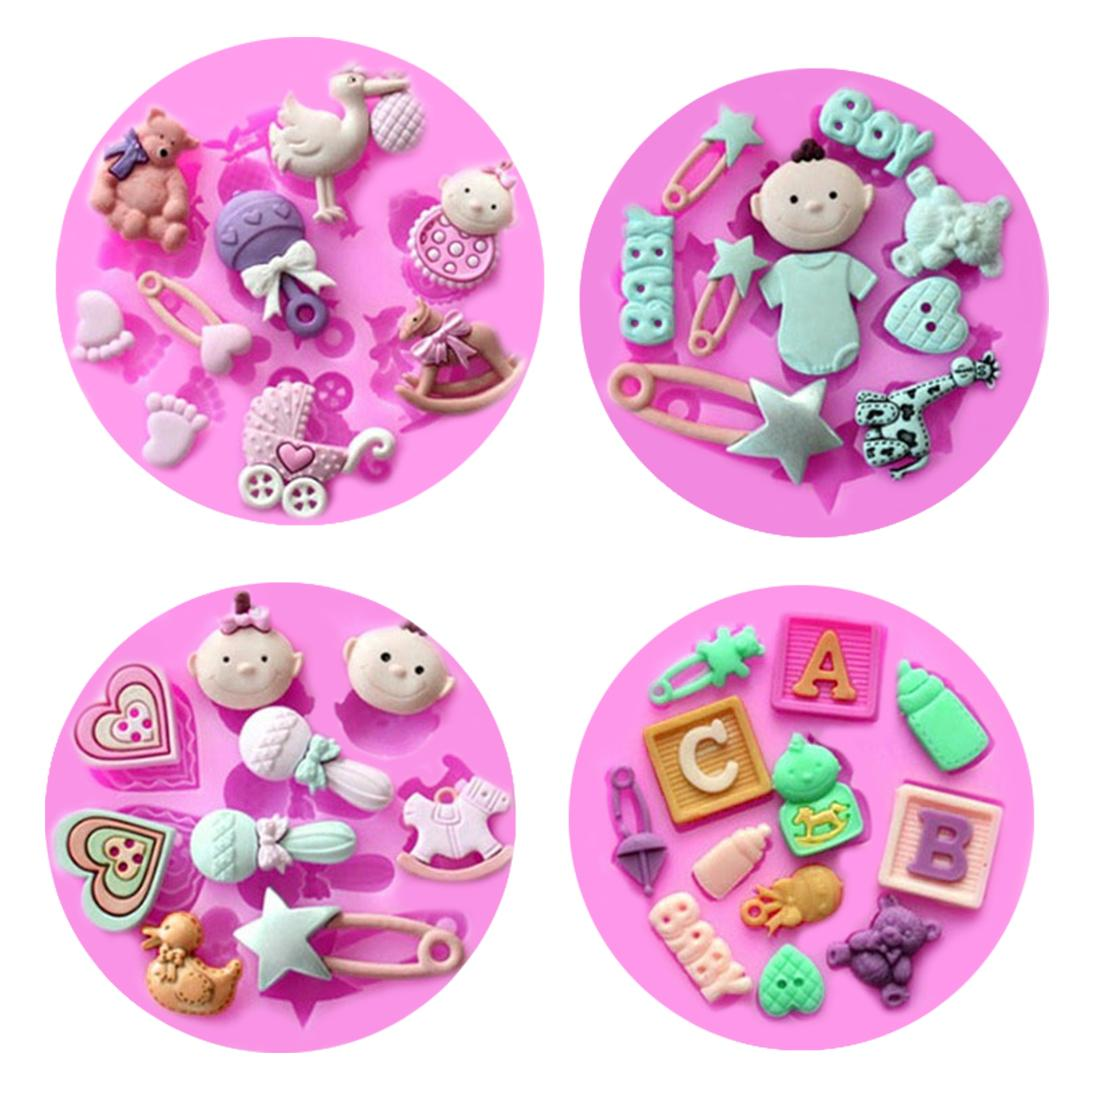 Pastry Tools 1PC Silicone Mold Baby Theme Baby Carriage Fondant Chocolate Soap Mold Cake Stencils Bread Mould Kitchen Baking Pan